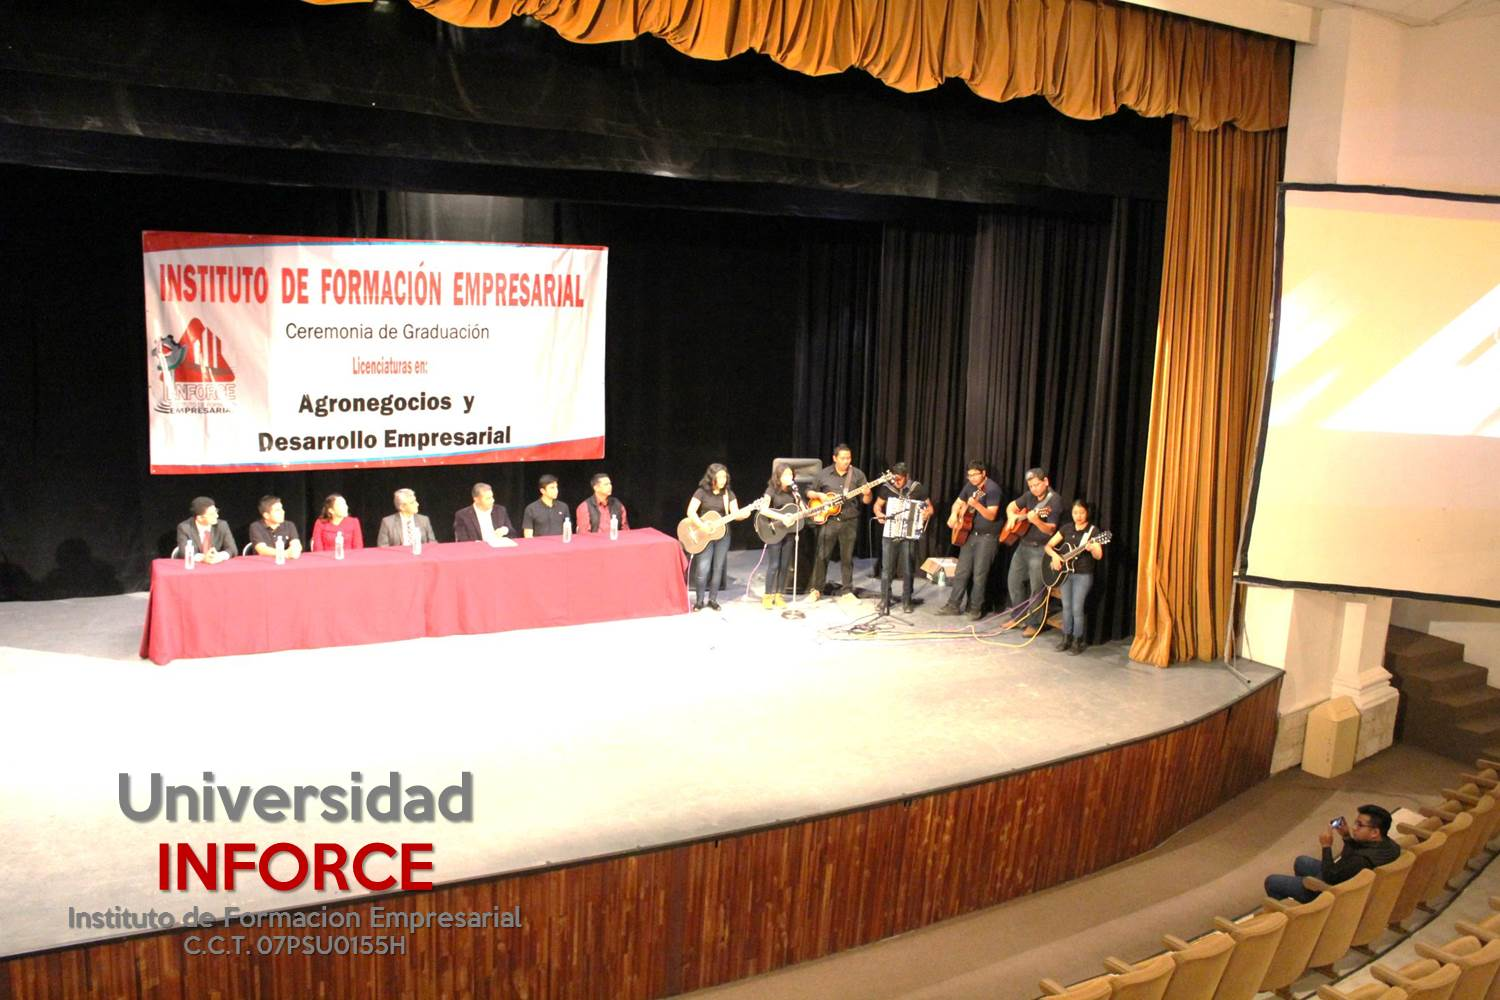 universidad-inforce-comitan-2da-generacion-diplomado-002.jpg